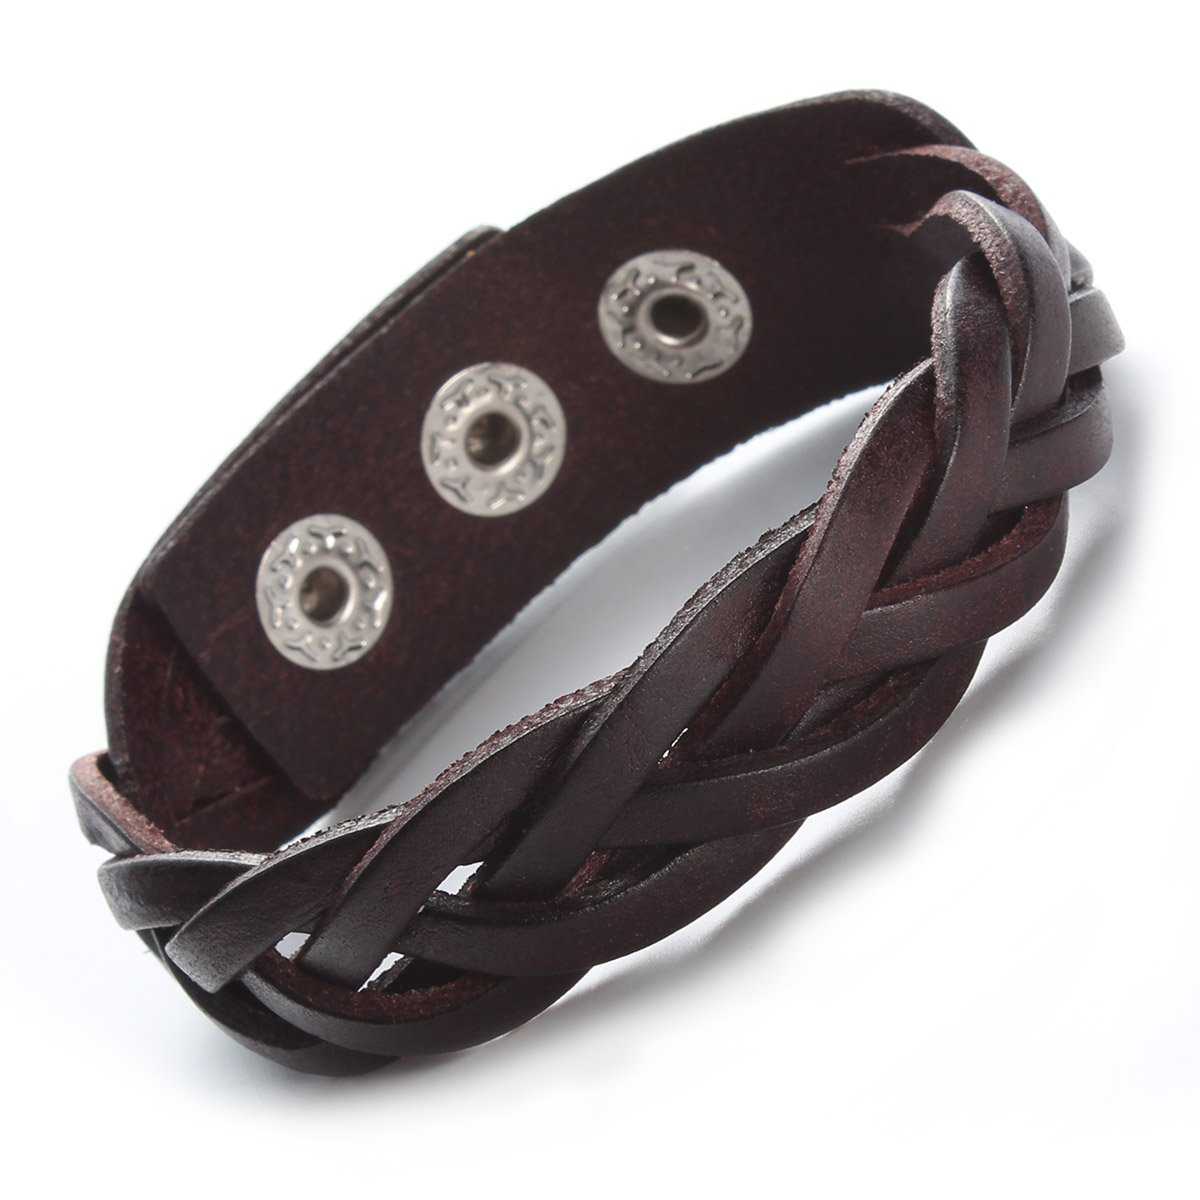 "Godyce Brown Black Genuine Leather Bracelet Braided Wide Women Men Punk - 9"" Button Adjust Godyce company GOKL00164-1"